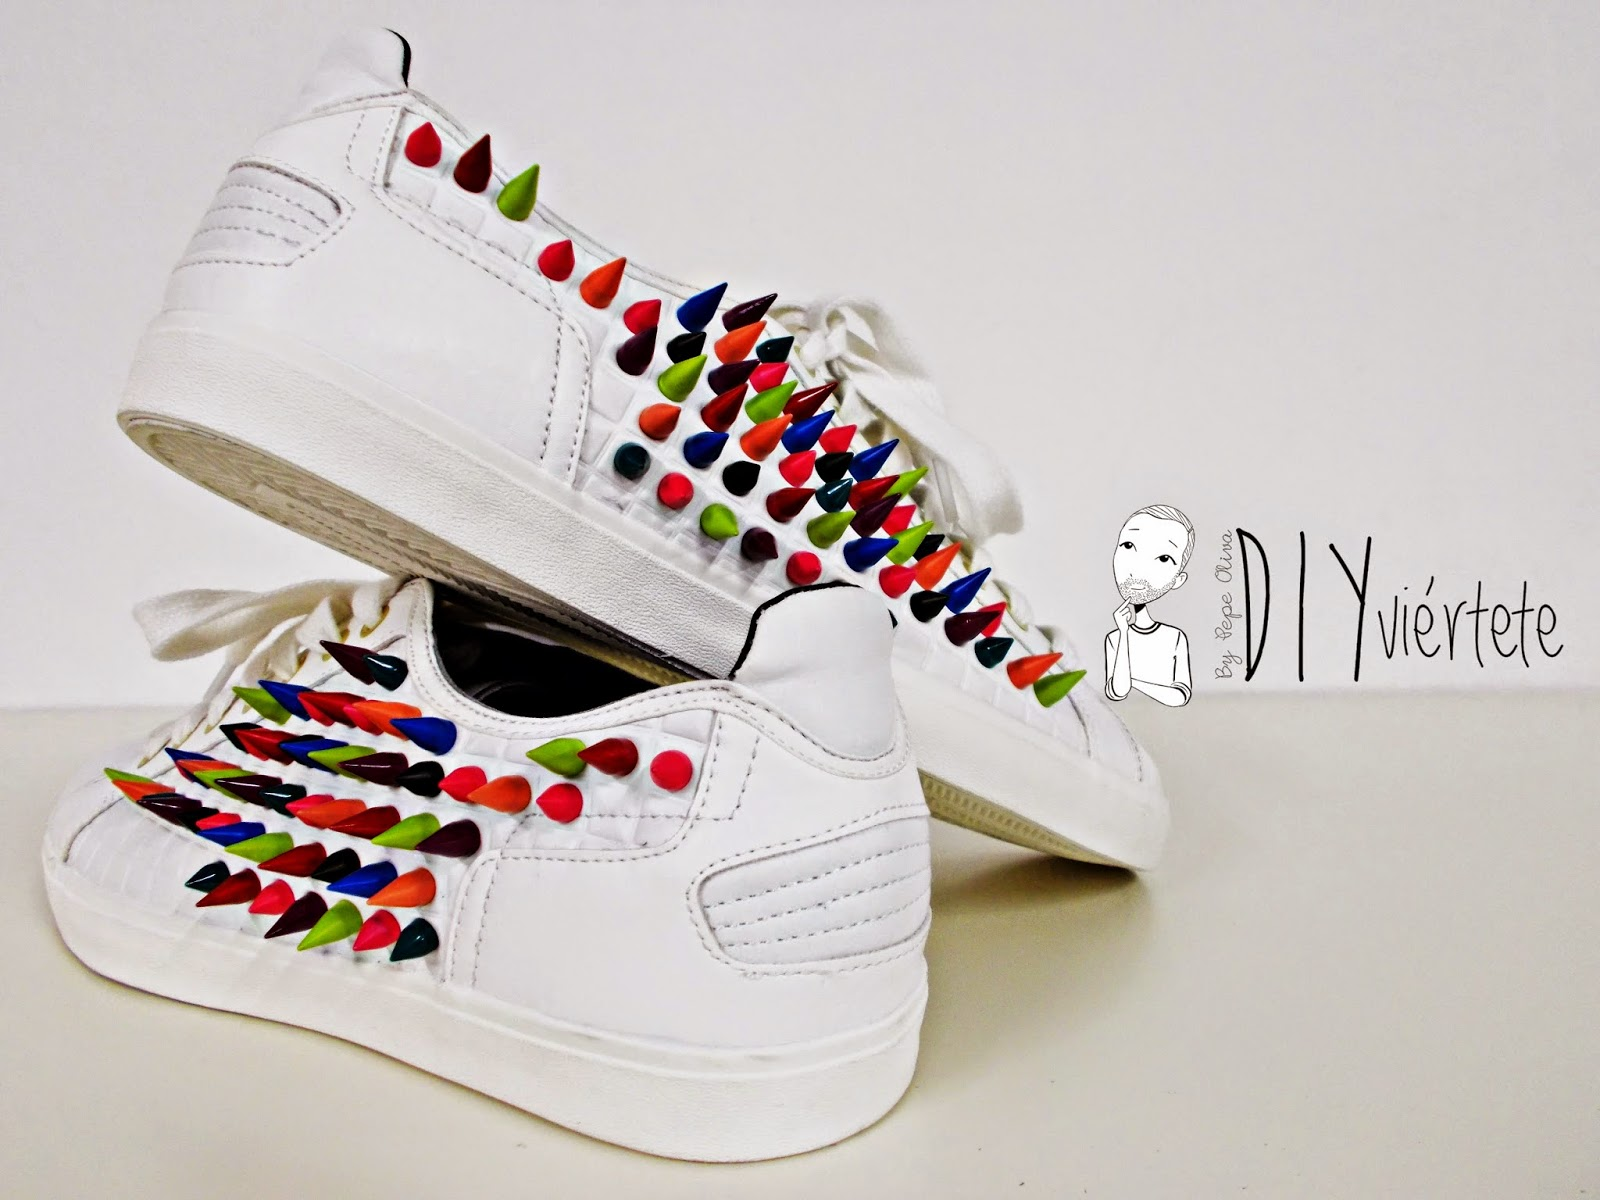 DIY-zapatillas-tunear-customizar-CHRISTIAN-LOUBOUTIN-zapatos-pinchos-esmaltes-pinta uñas-colores-1